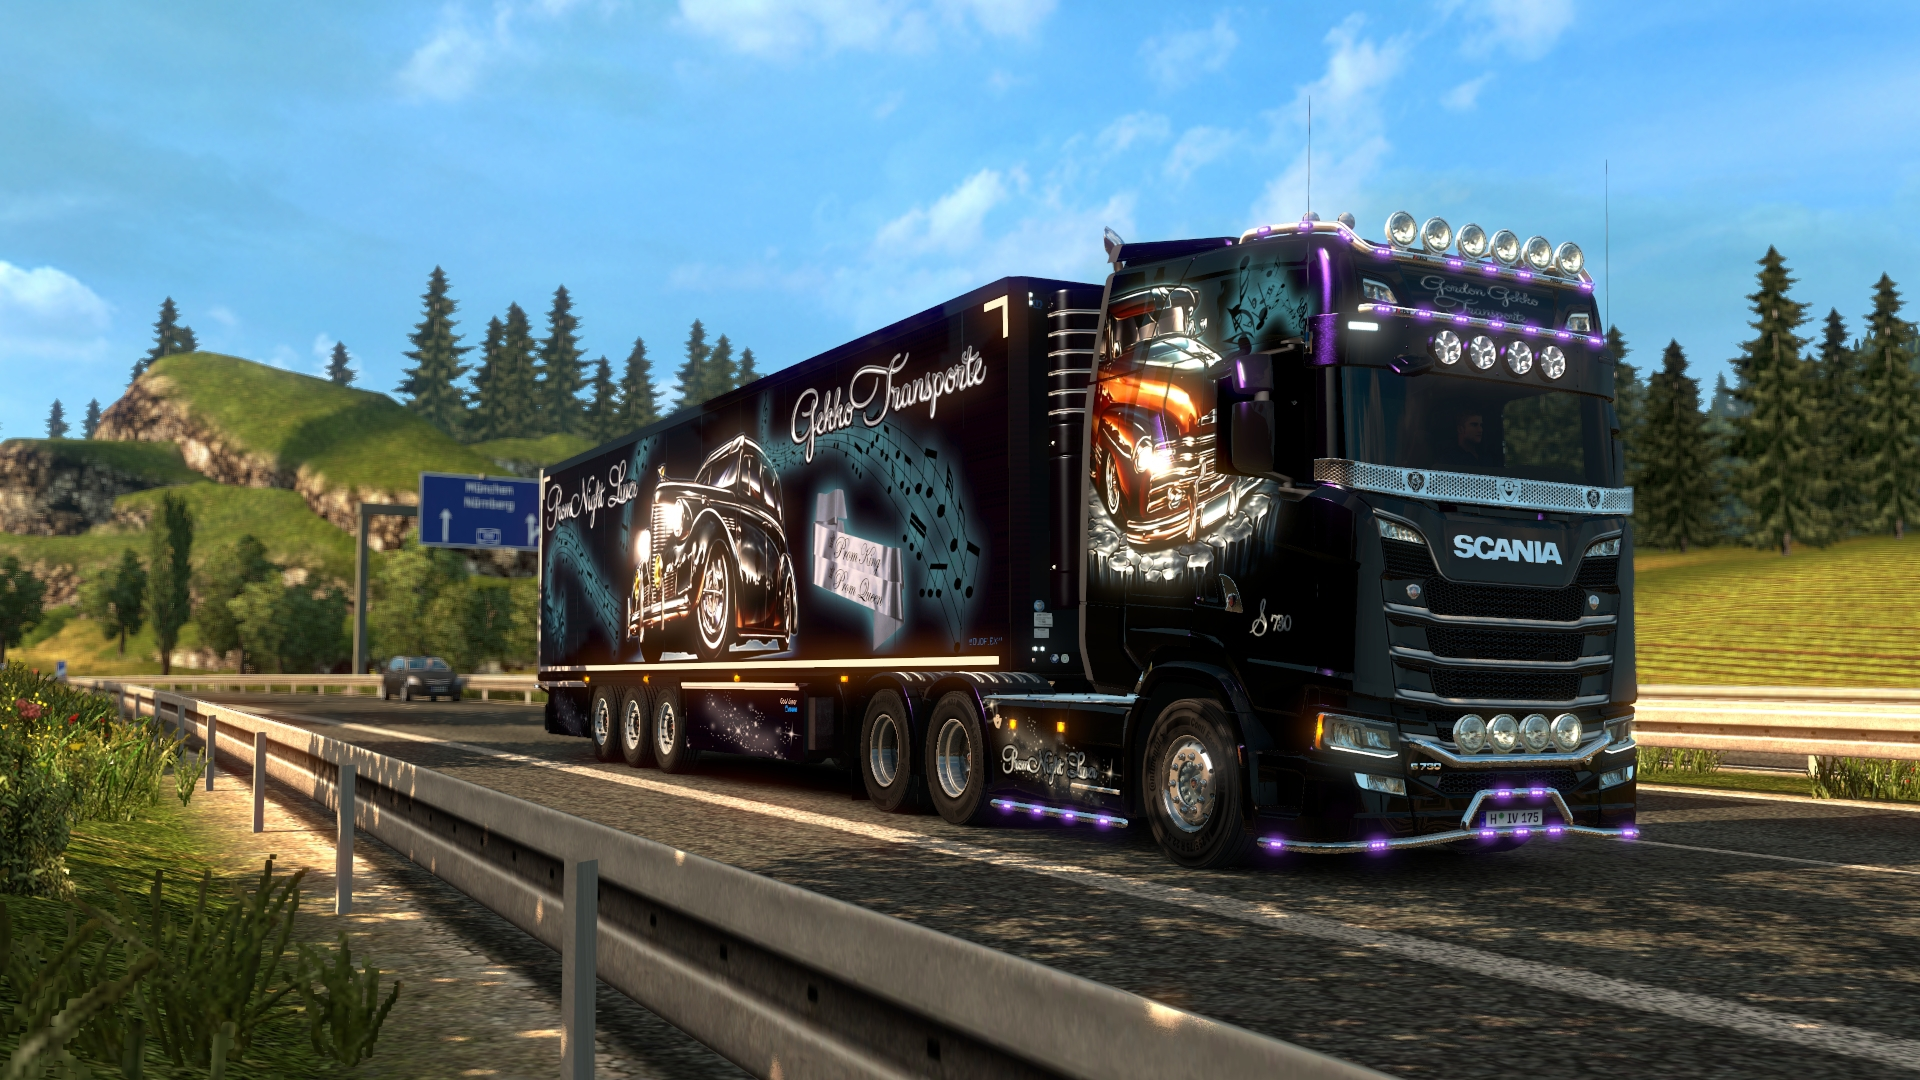 Screenshots - Seite 3 Ets2_20180506_185802_wyuwd